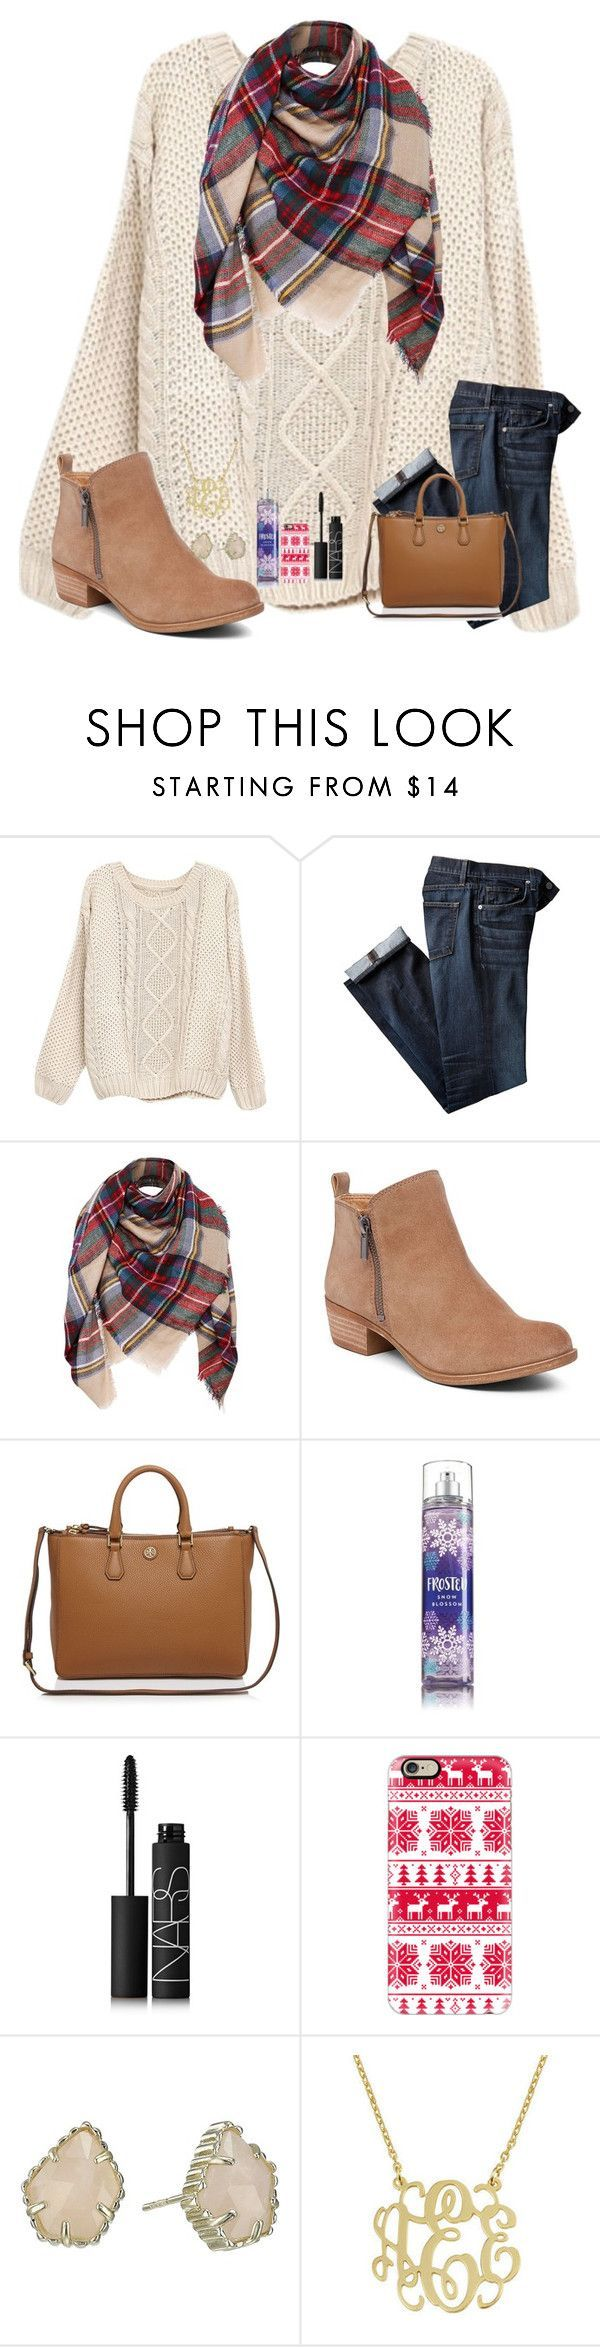 """Pumpkin Farm (Day 1)"" by mae343 ❤ liked on Polyvore featuring Lucky Brand, Tory Burch, NARS Cosmetics, Casetify, Kendra Scott and mattisfallcontest"